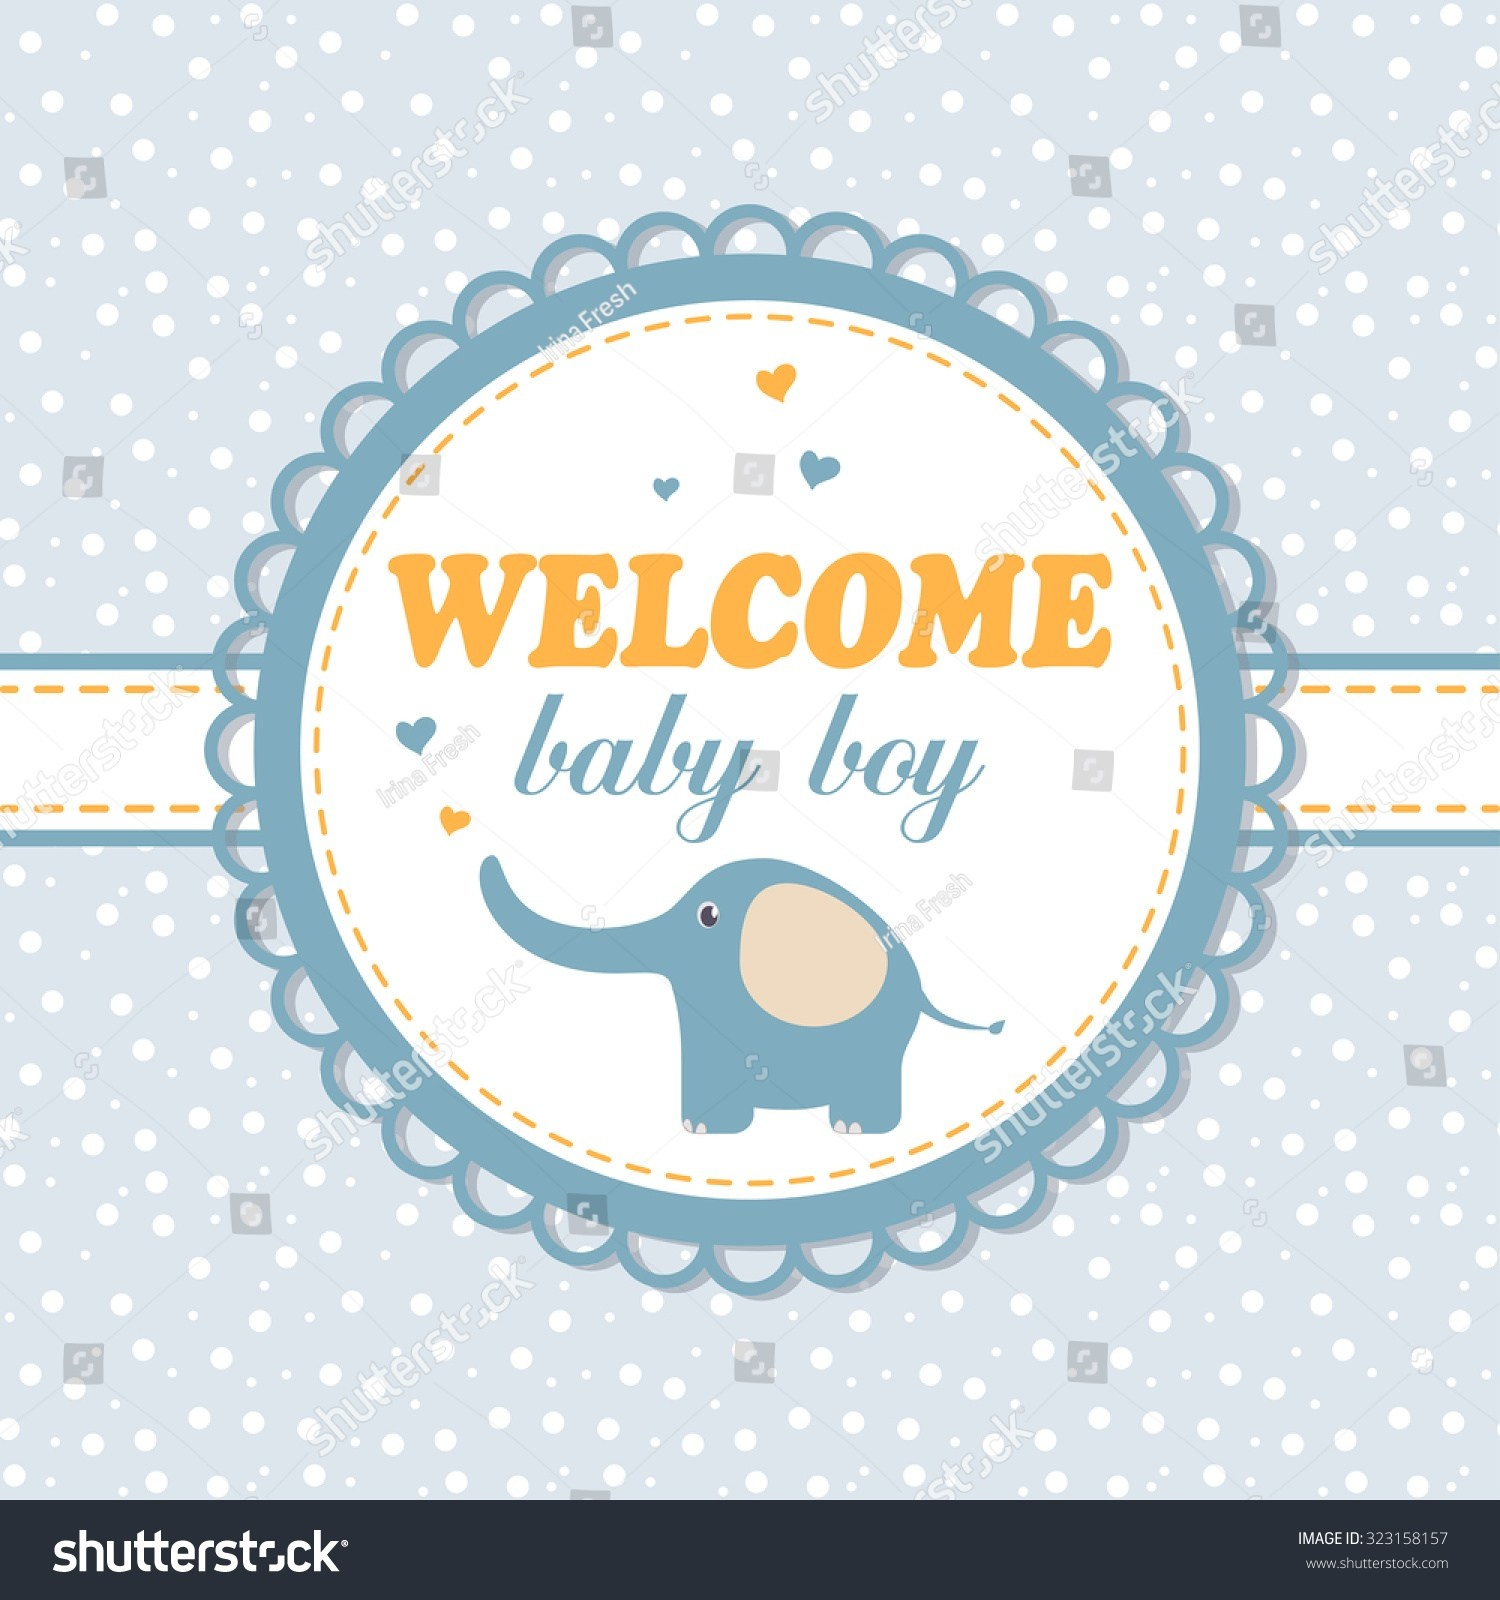 Baby Card Templates. Baby Shower Card Template 20 Free Printable - Free Printable Baby Cards Templates